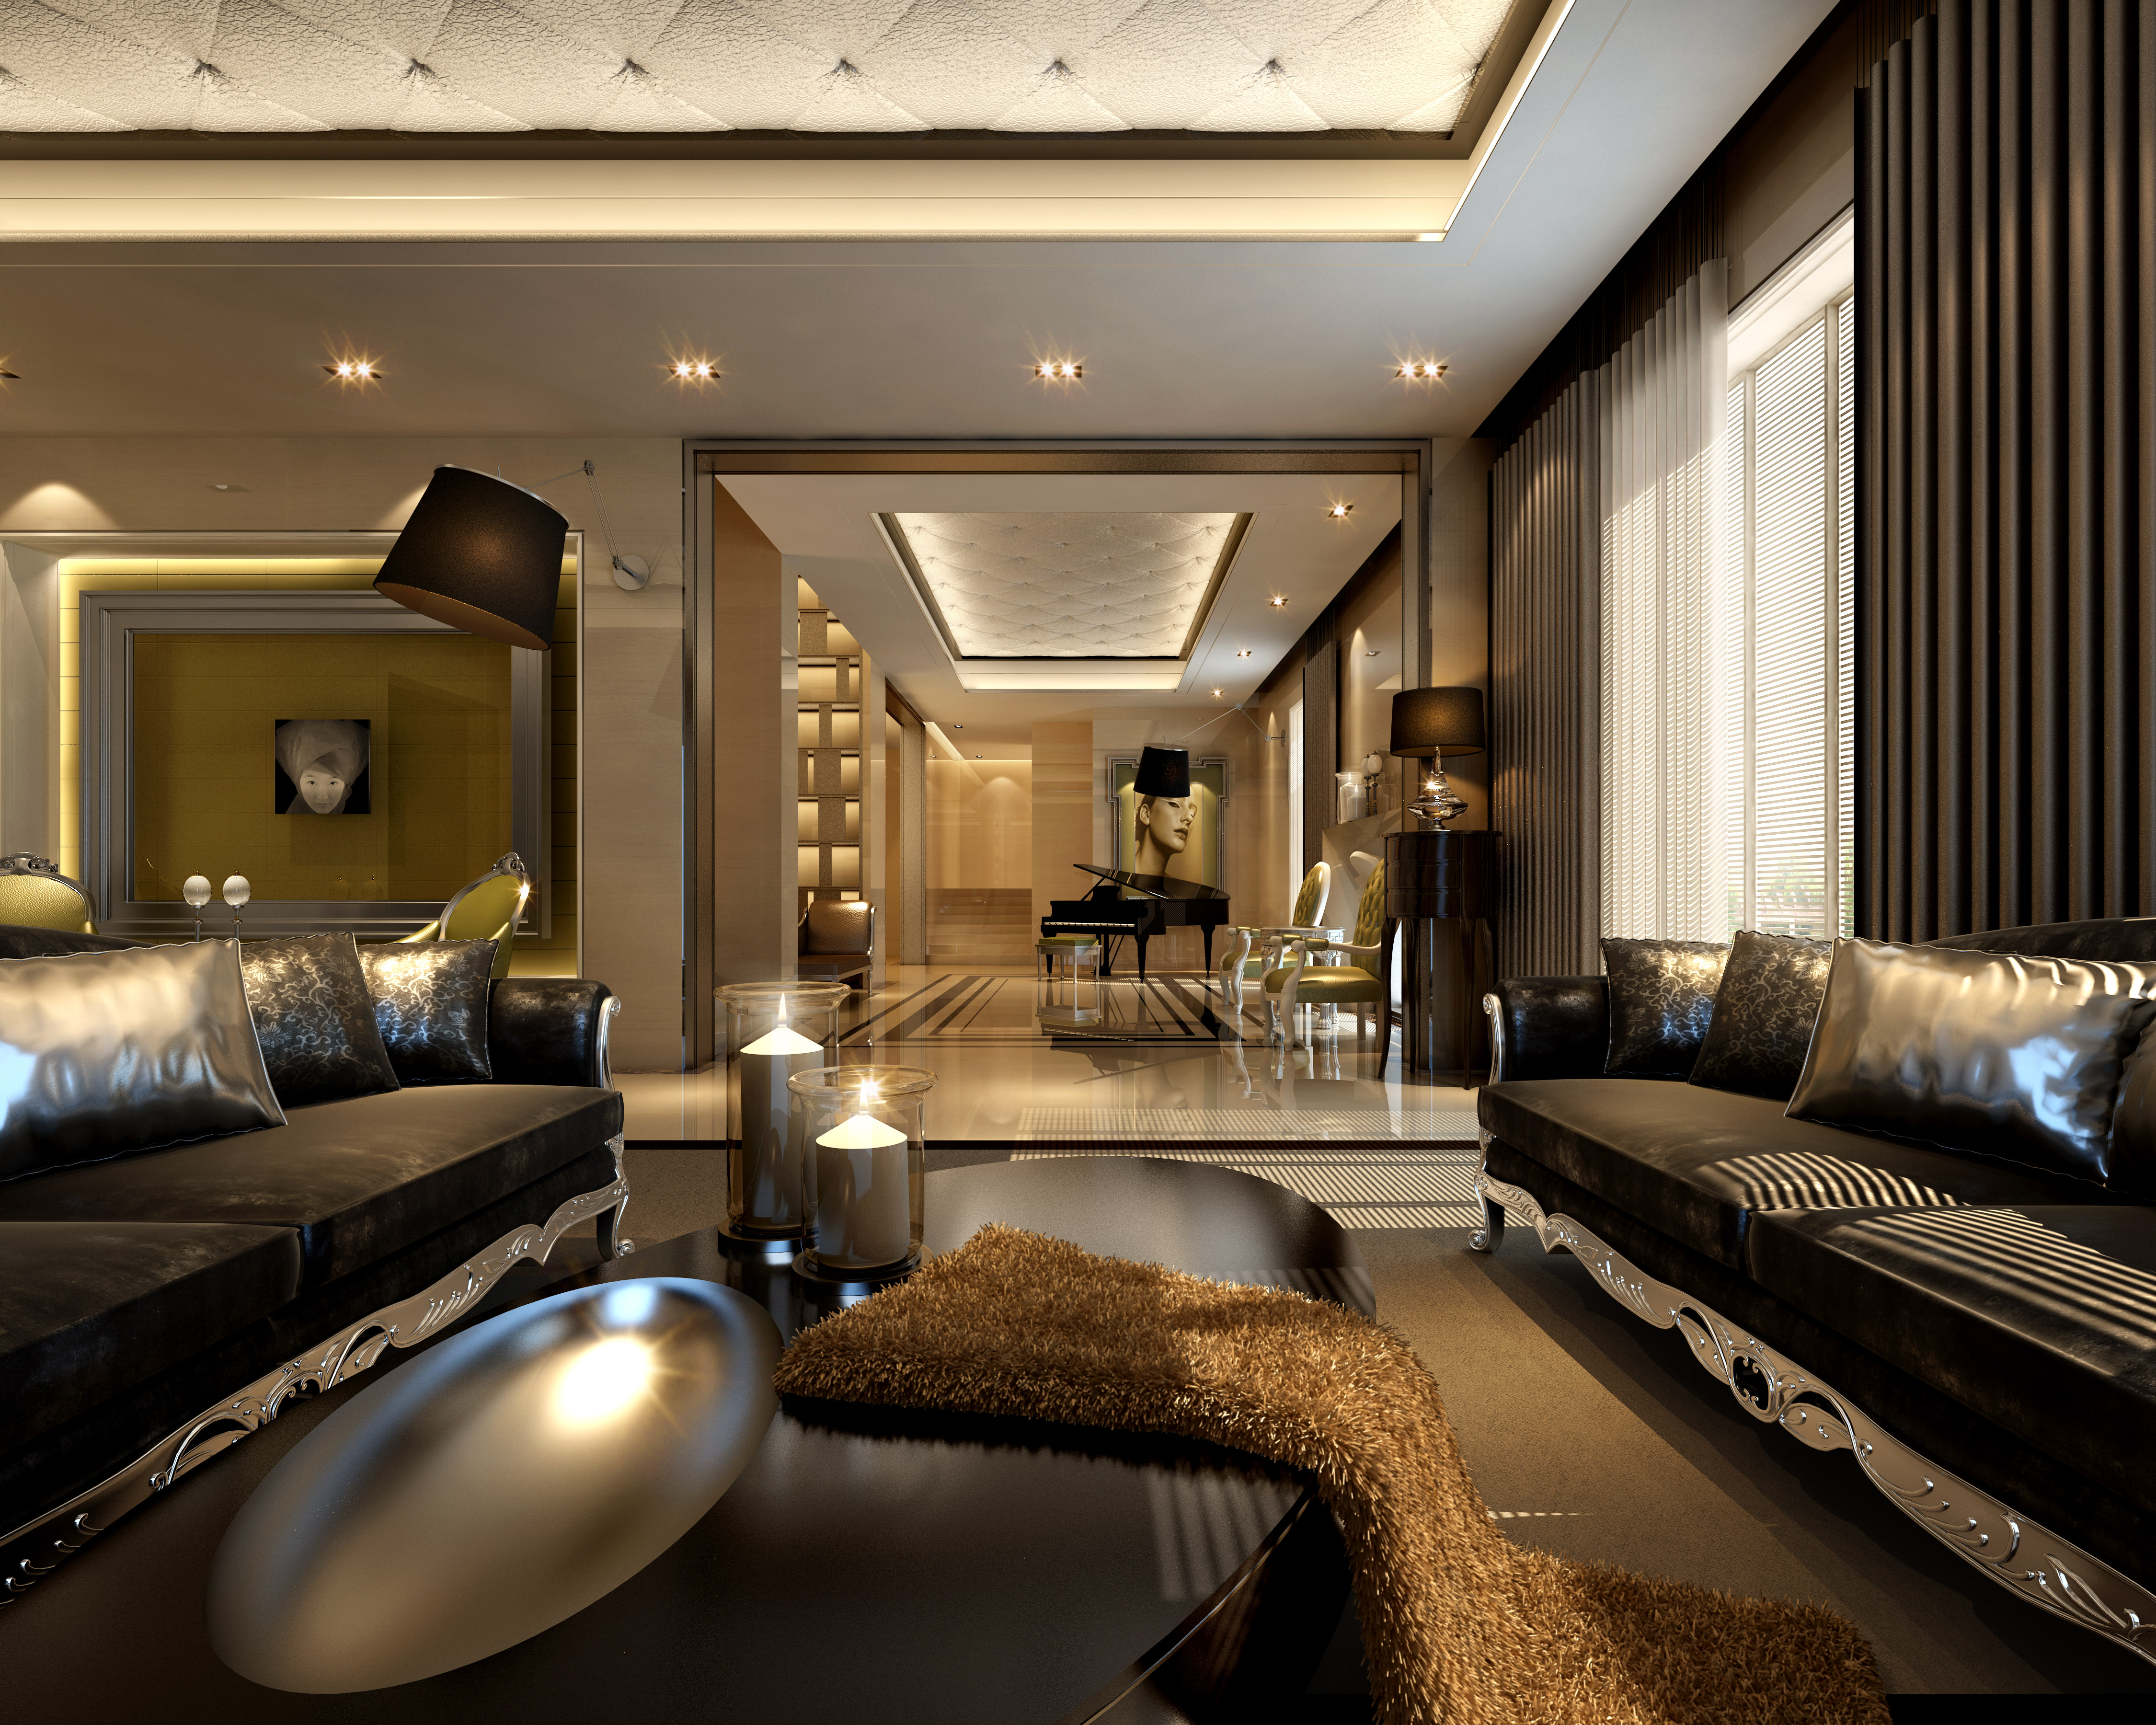 ... Collection Living Room And Bedroom Collection 3d Model Max 5 ...